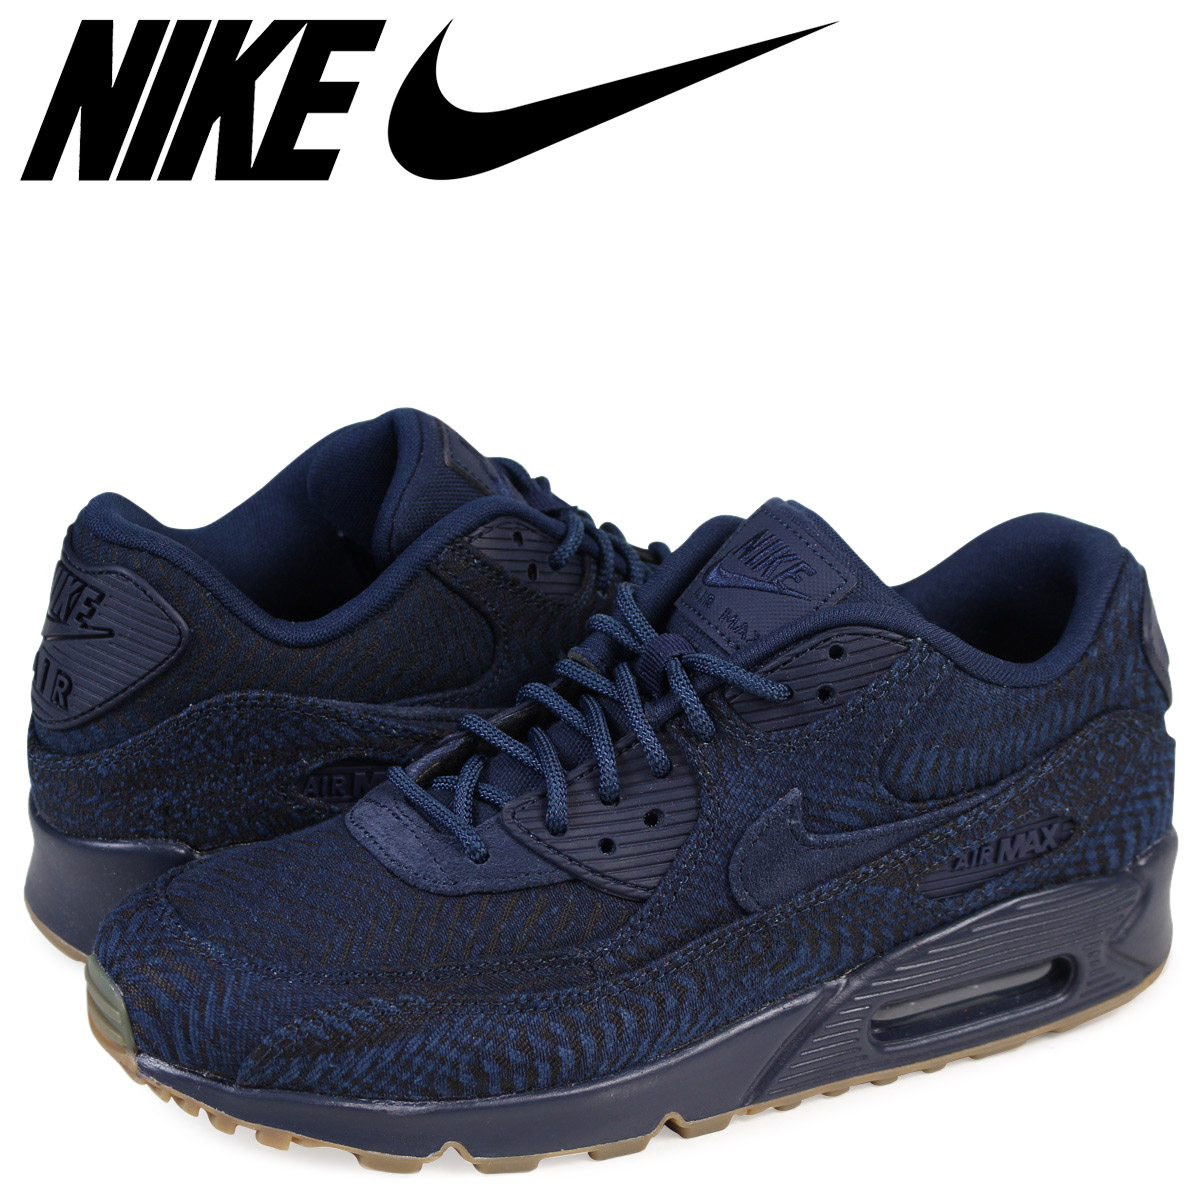 new concept 1f1db 4f2ac Nike NIKE Air Max 90 sneakers AIR MAX 90 PREMIUM JACQUARD 918,358-400 mens  shoes navy load planned Shinnyu load in reservation product 928  containing